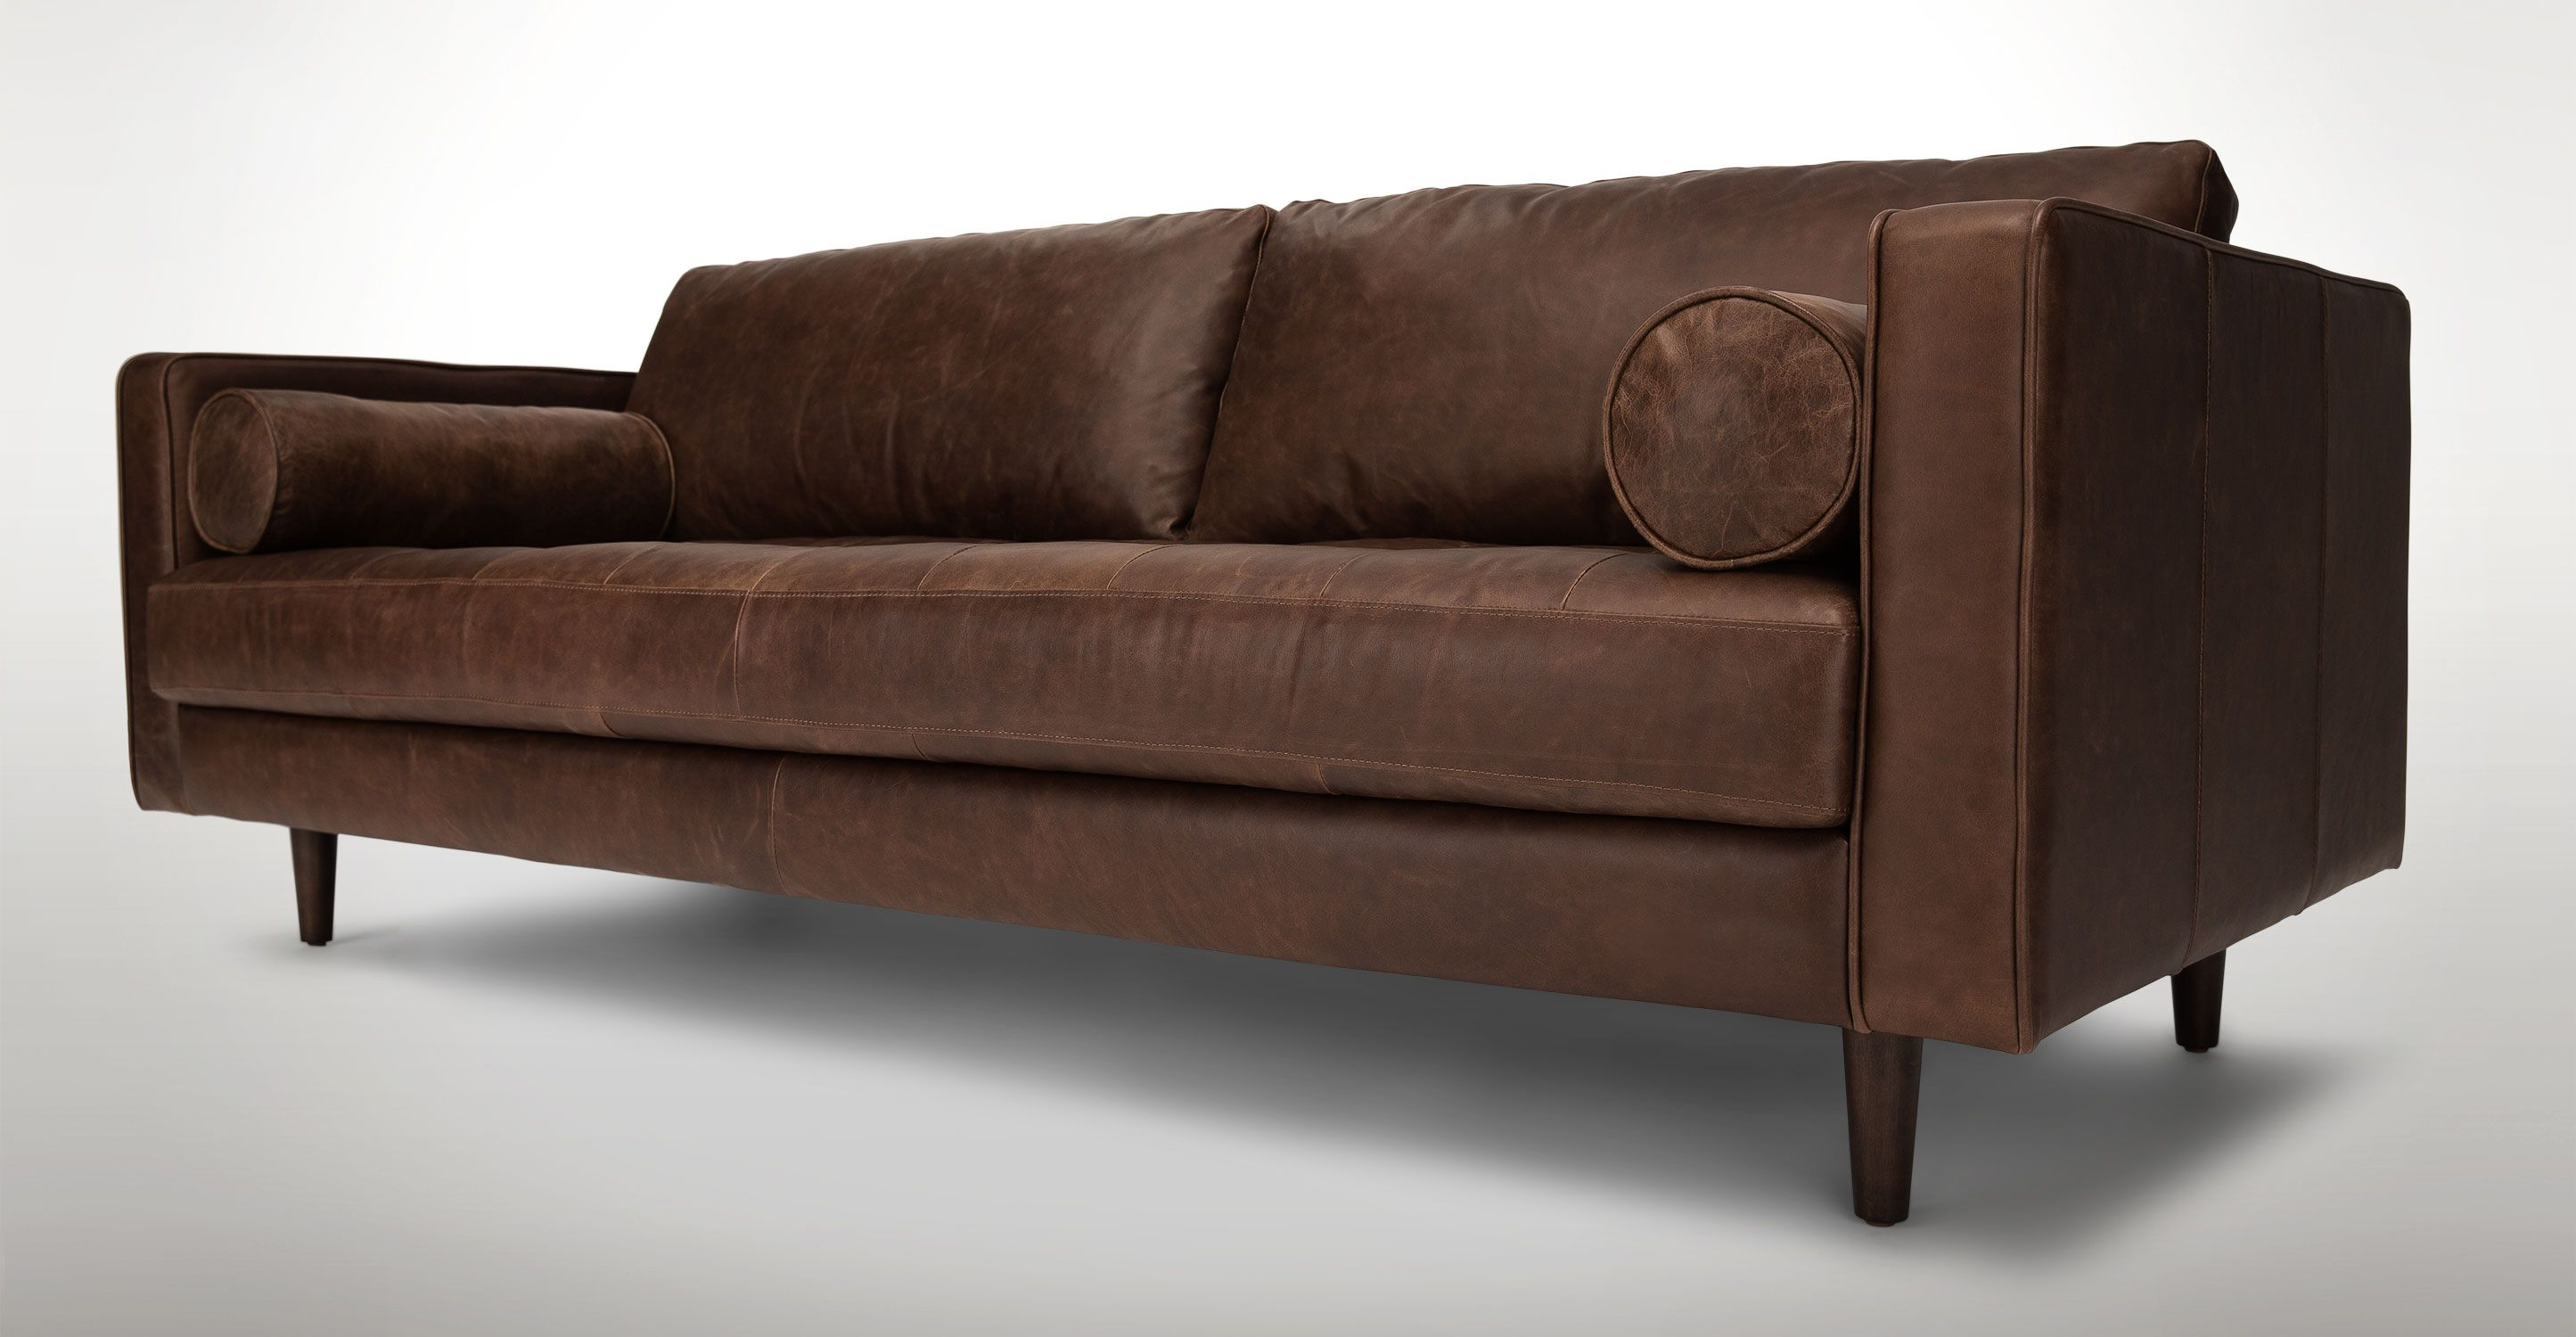 Chocolate Brown Tufted Leather Sofa Article Sven Modern Furniture